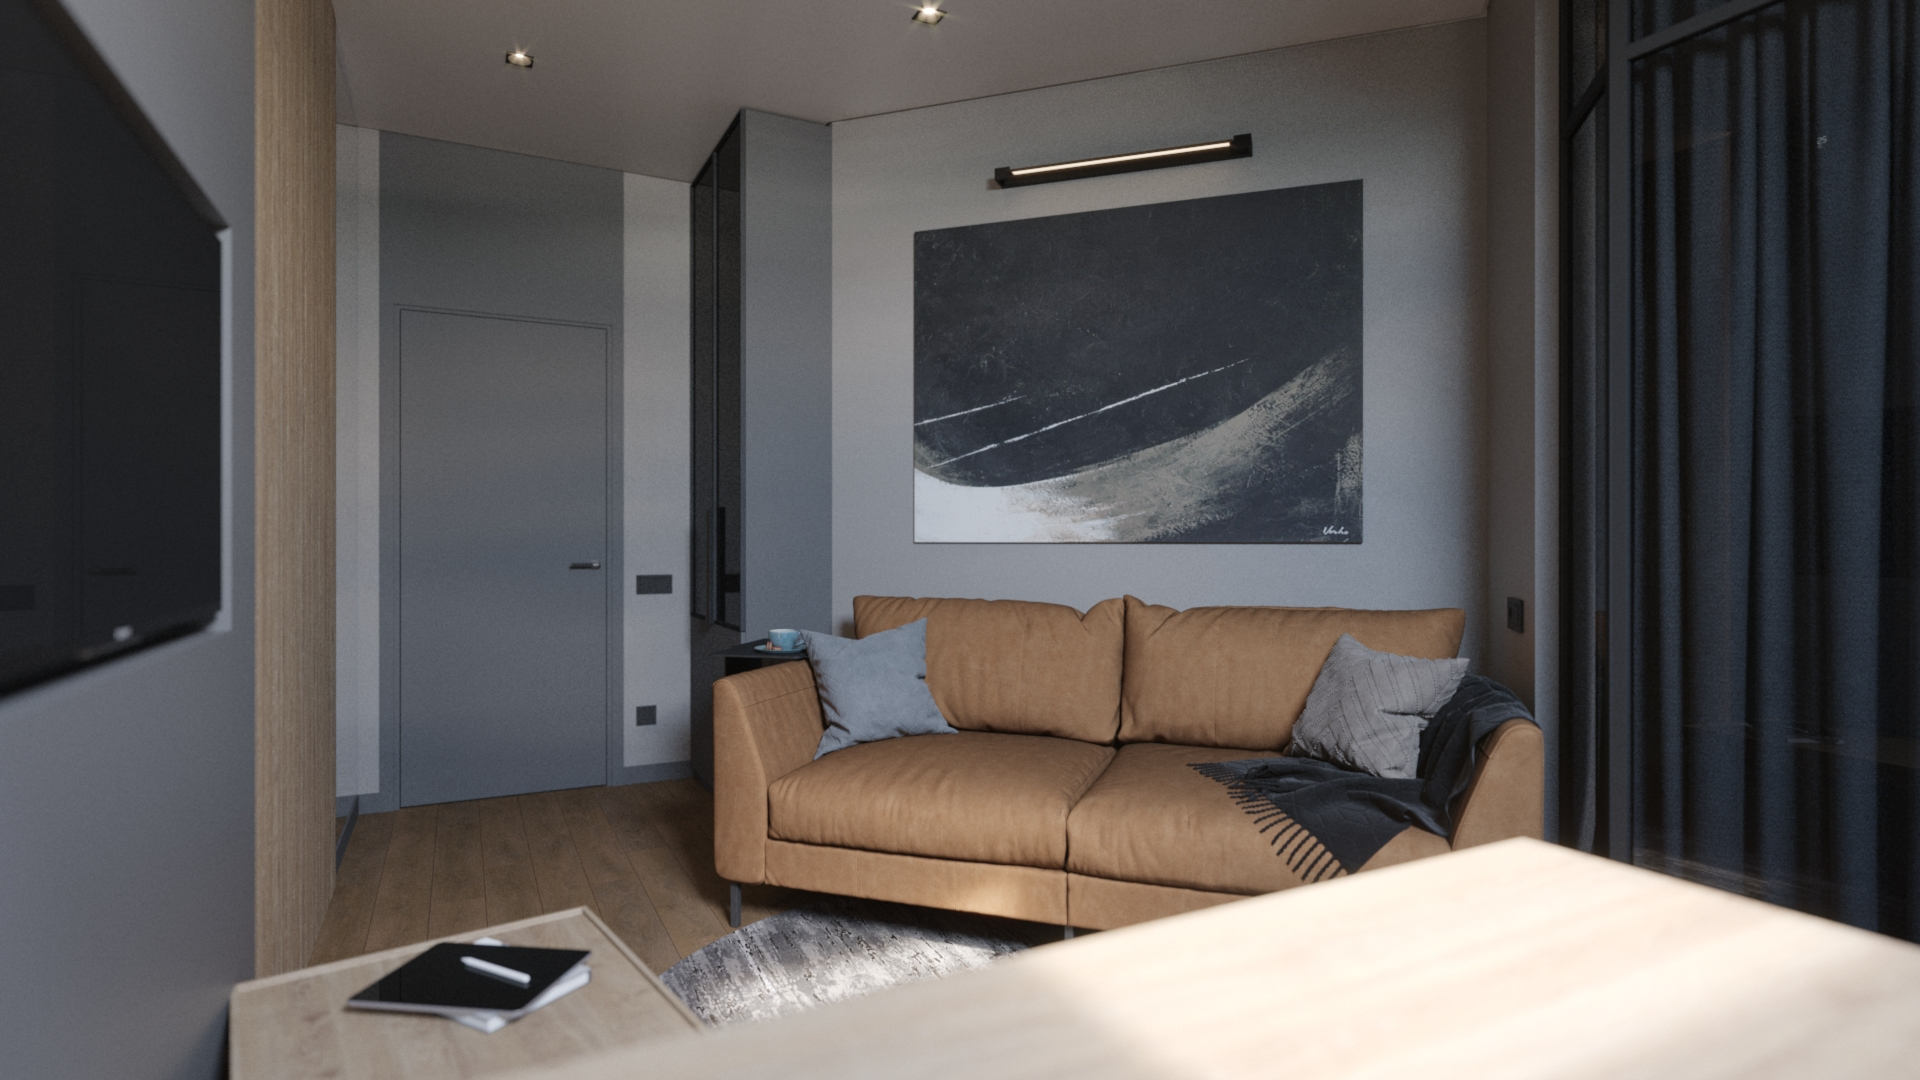 BK_LuxeHome_Kabinet_View03